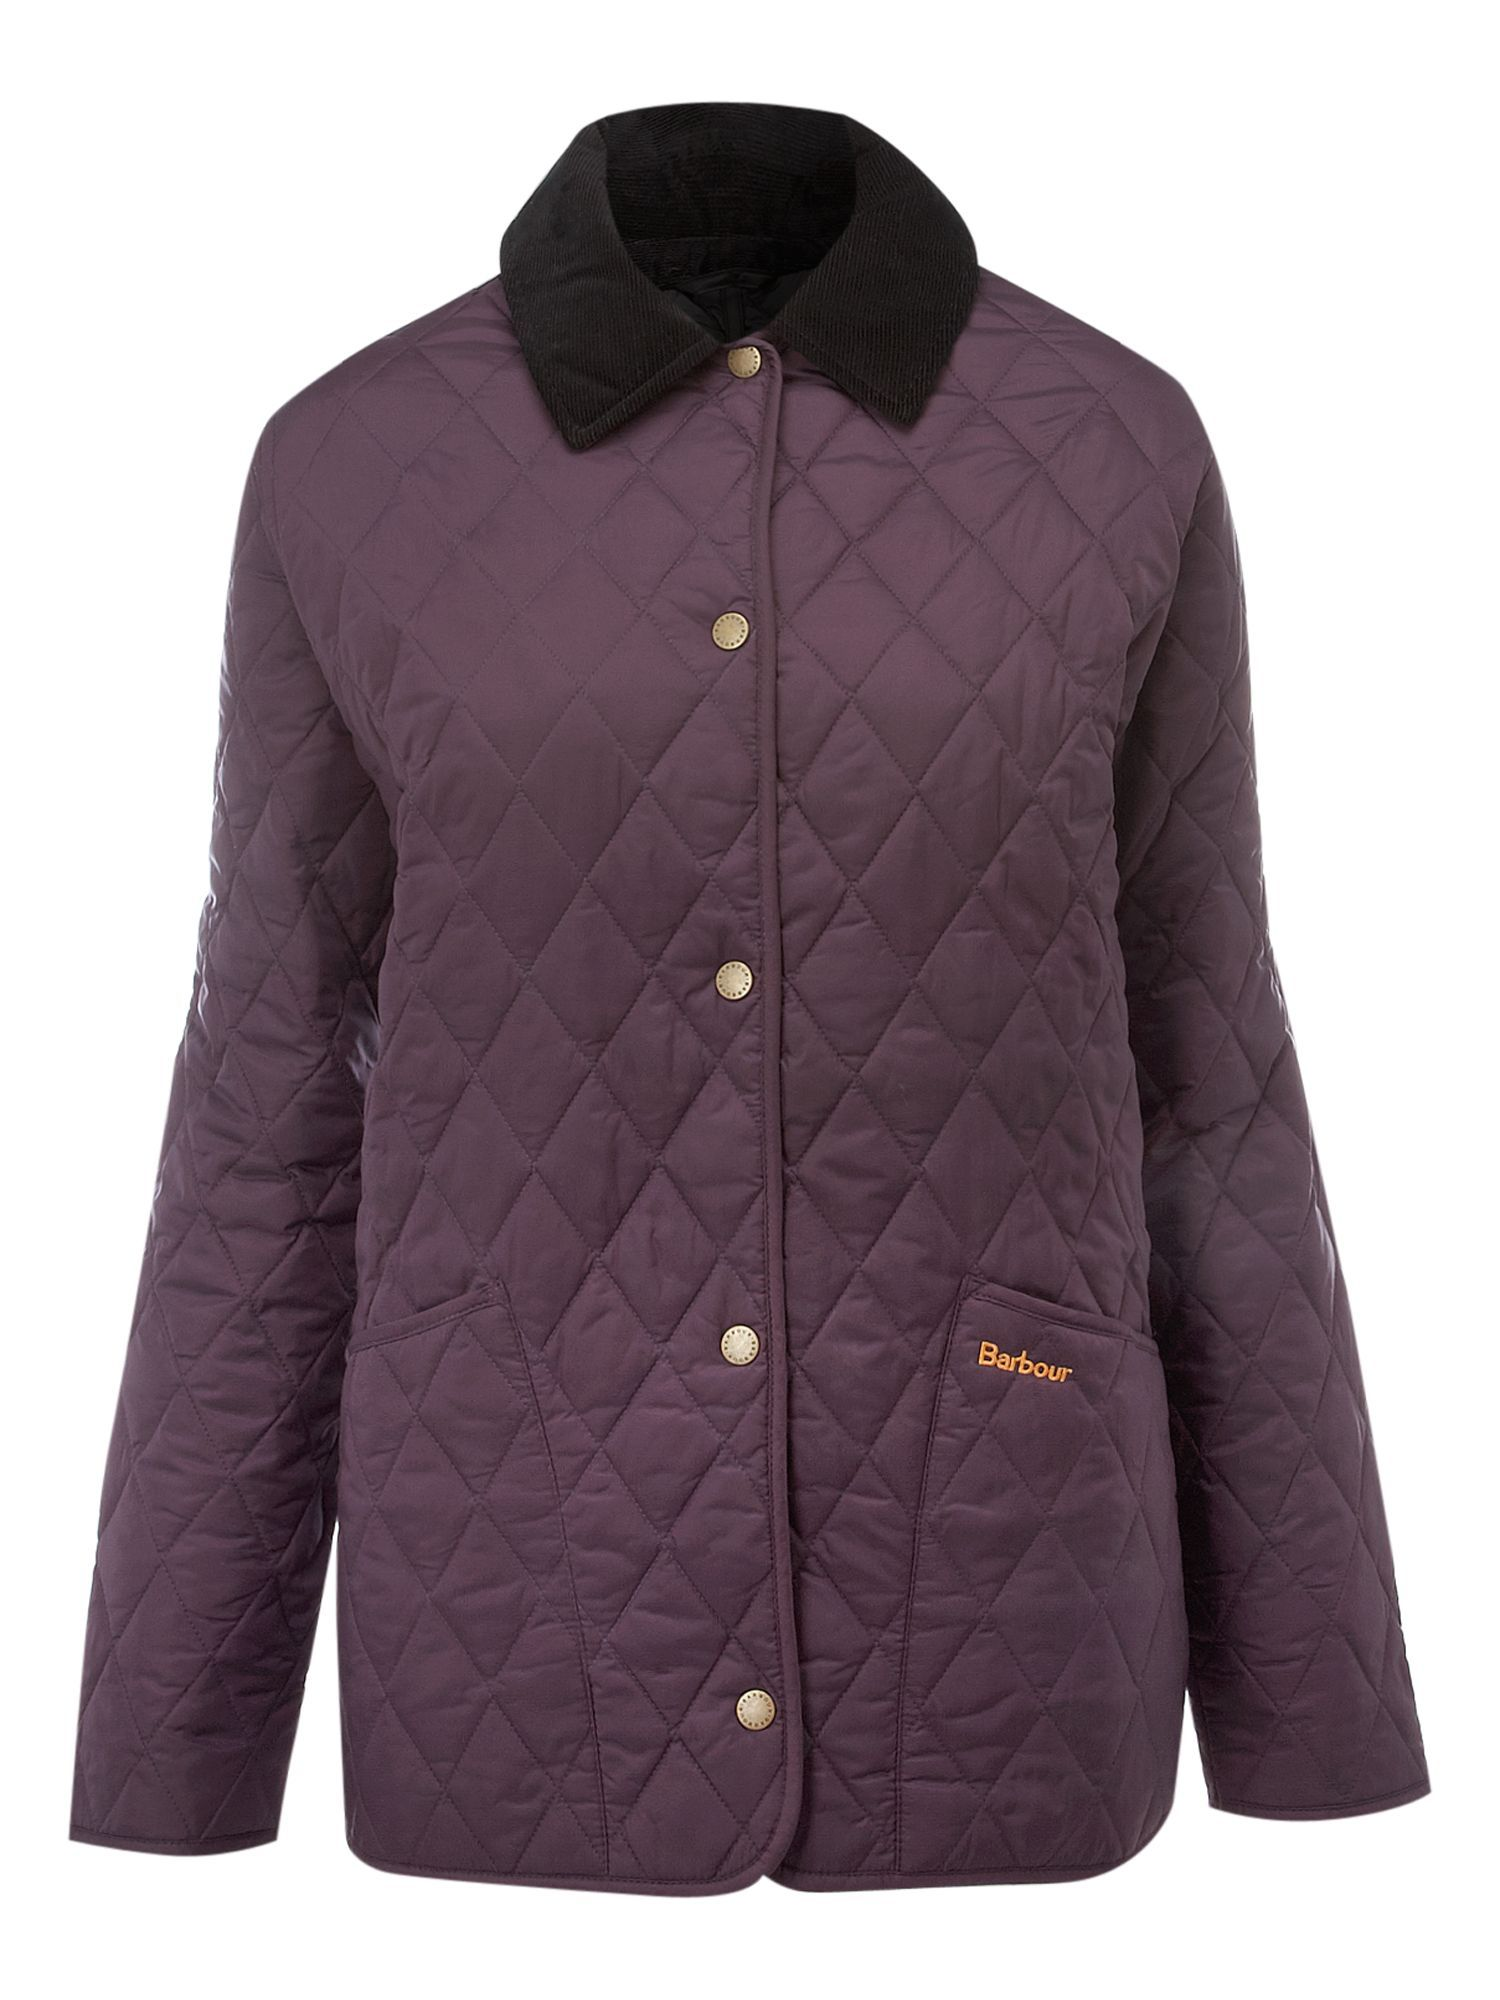 Shaped Liddesdale Quilted Jacket, Purple - pattern: plain; length: standard; collar: round collar/collarless; style: quilted; hip detail: front pockets at hip; fit: slim fit; predominant colour: aubergine; occasions: casual; fibres: viscose/rayon - 100%; sleeve length: long sleeve; sleeve style: standard